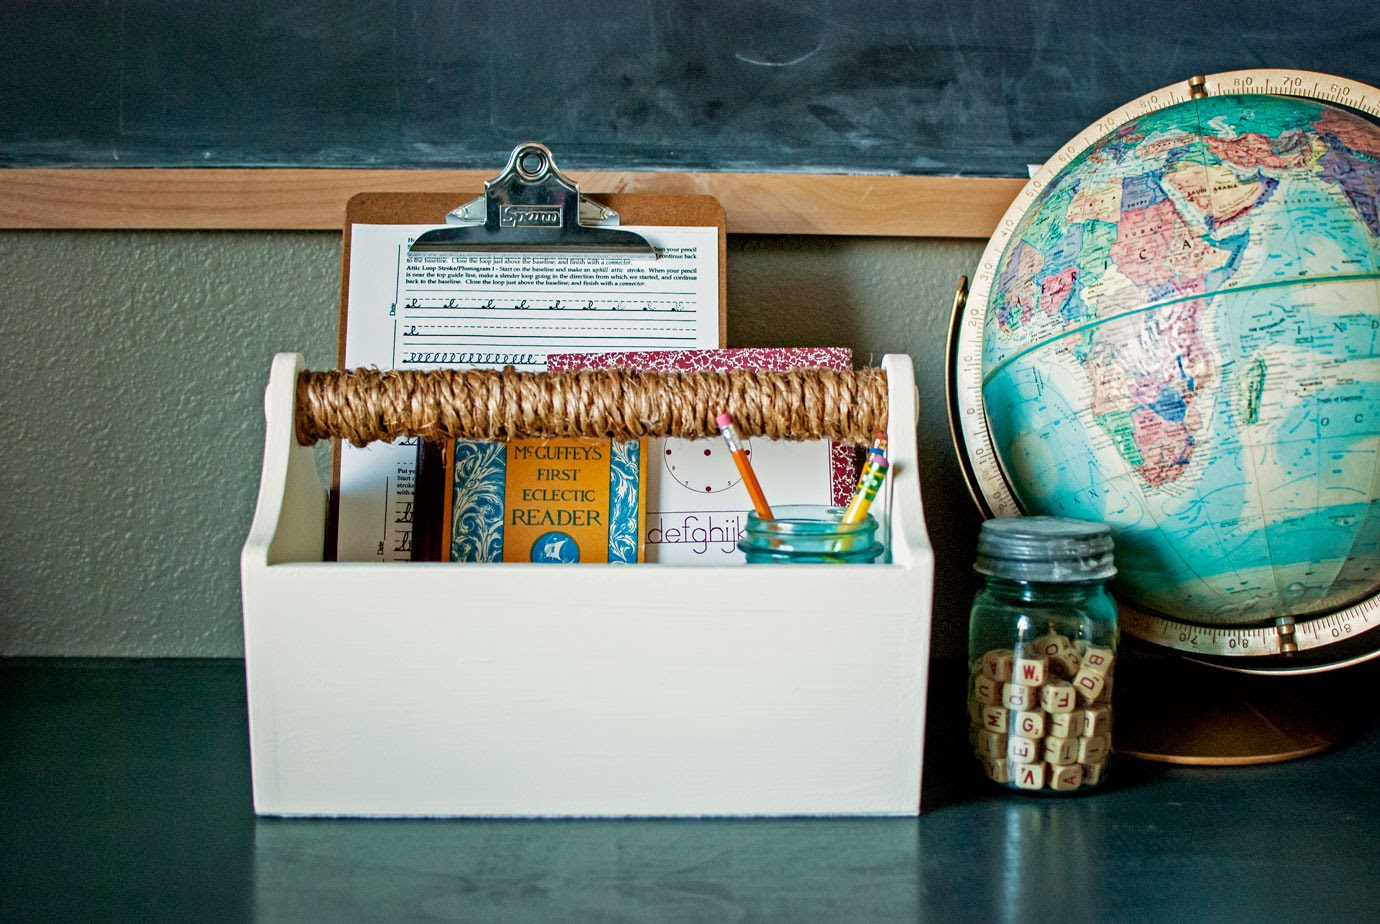 Farmhouse Tool Box With School Supplies Inside Next to a Vintage Globe